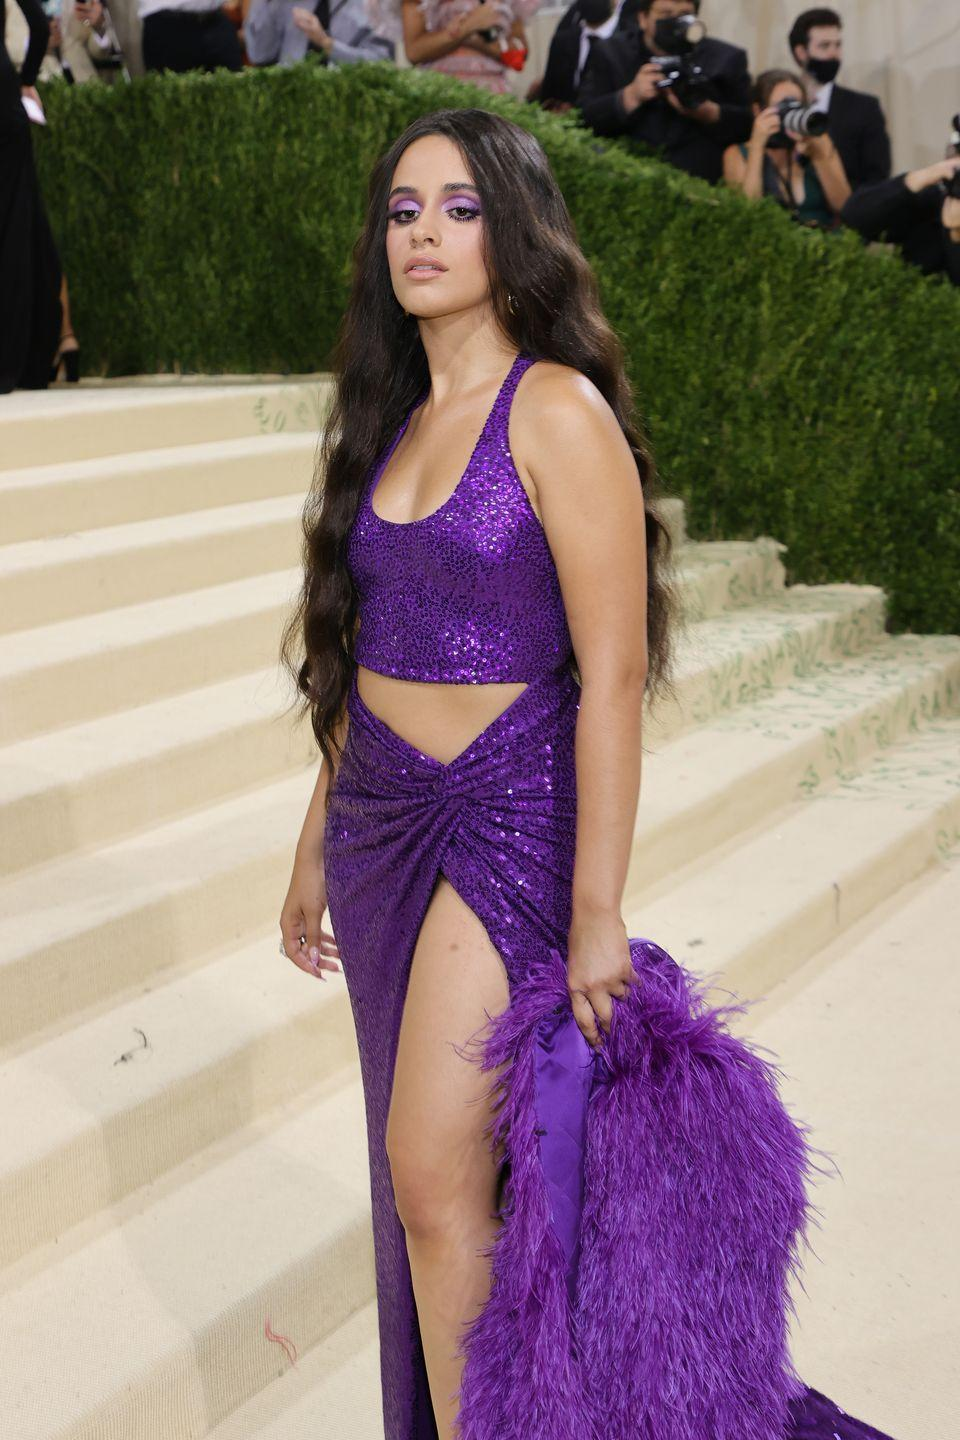 <p>Camila Cabello was doused in purple on the carpet, from her glittery purple dress to the two-toned purple shadow look that gave her fresh-faced mug an instant pop. </p>